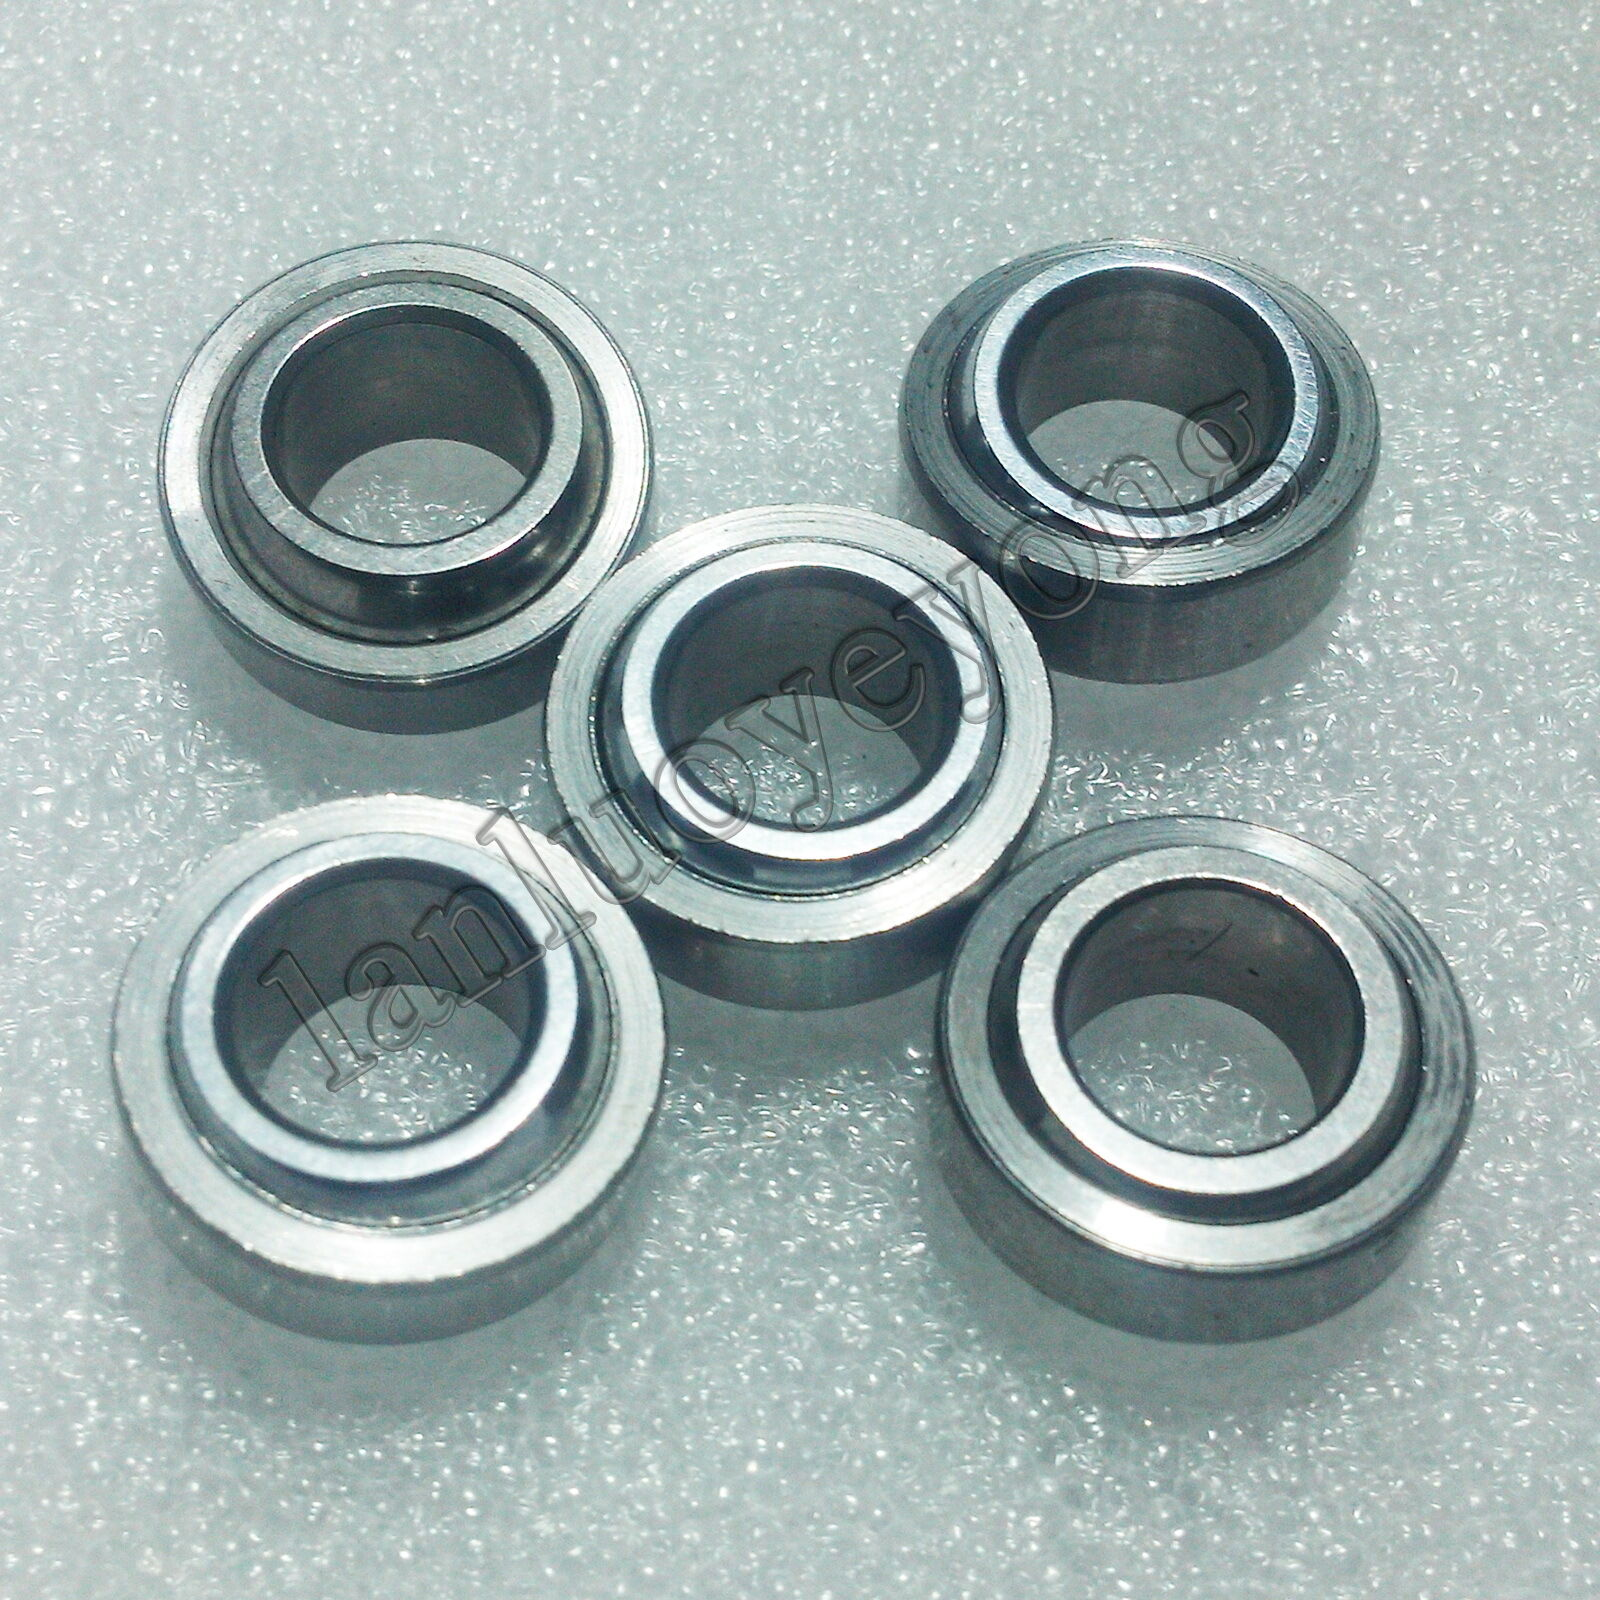 New 5pcs GE15C 15x26x12mm Spherical Plain Radial Bearing